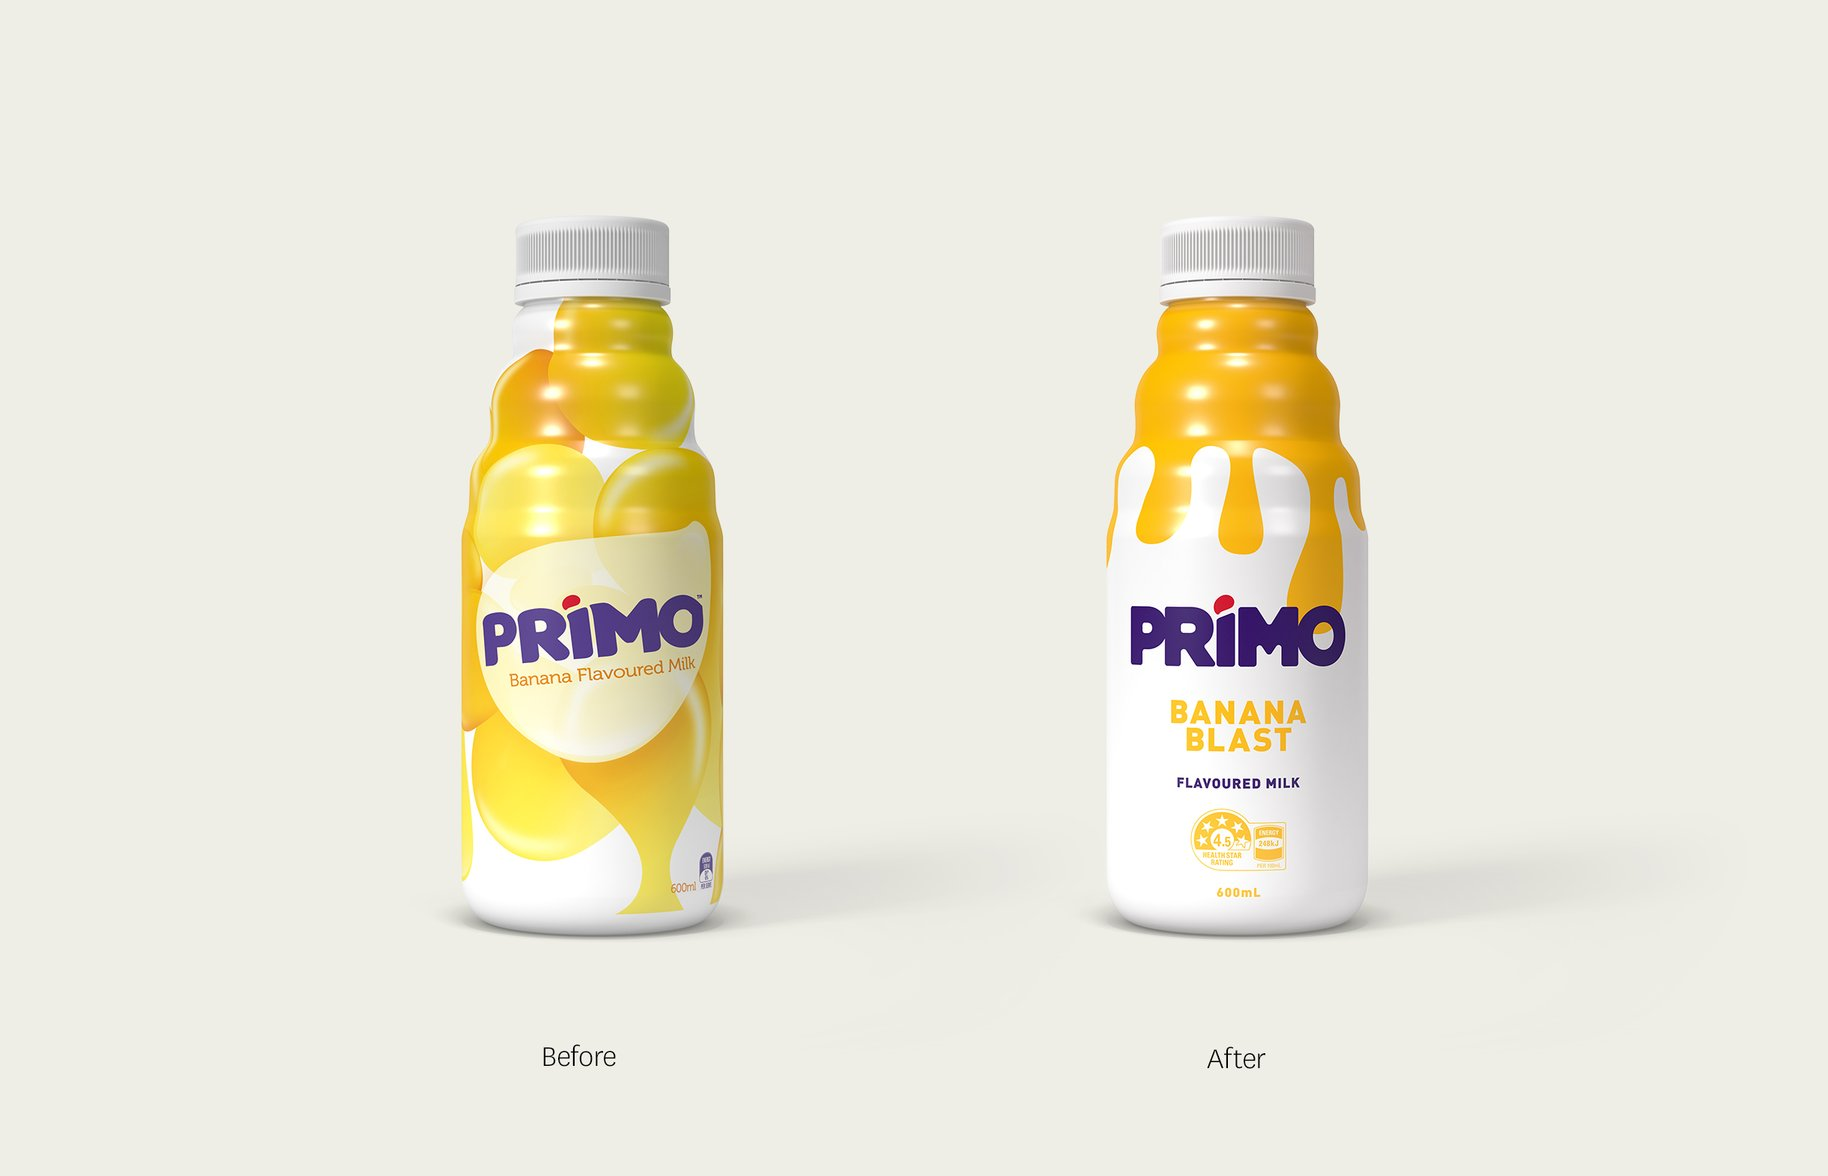 Primo before and after comparison